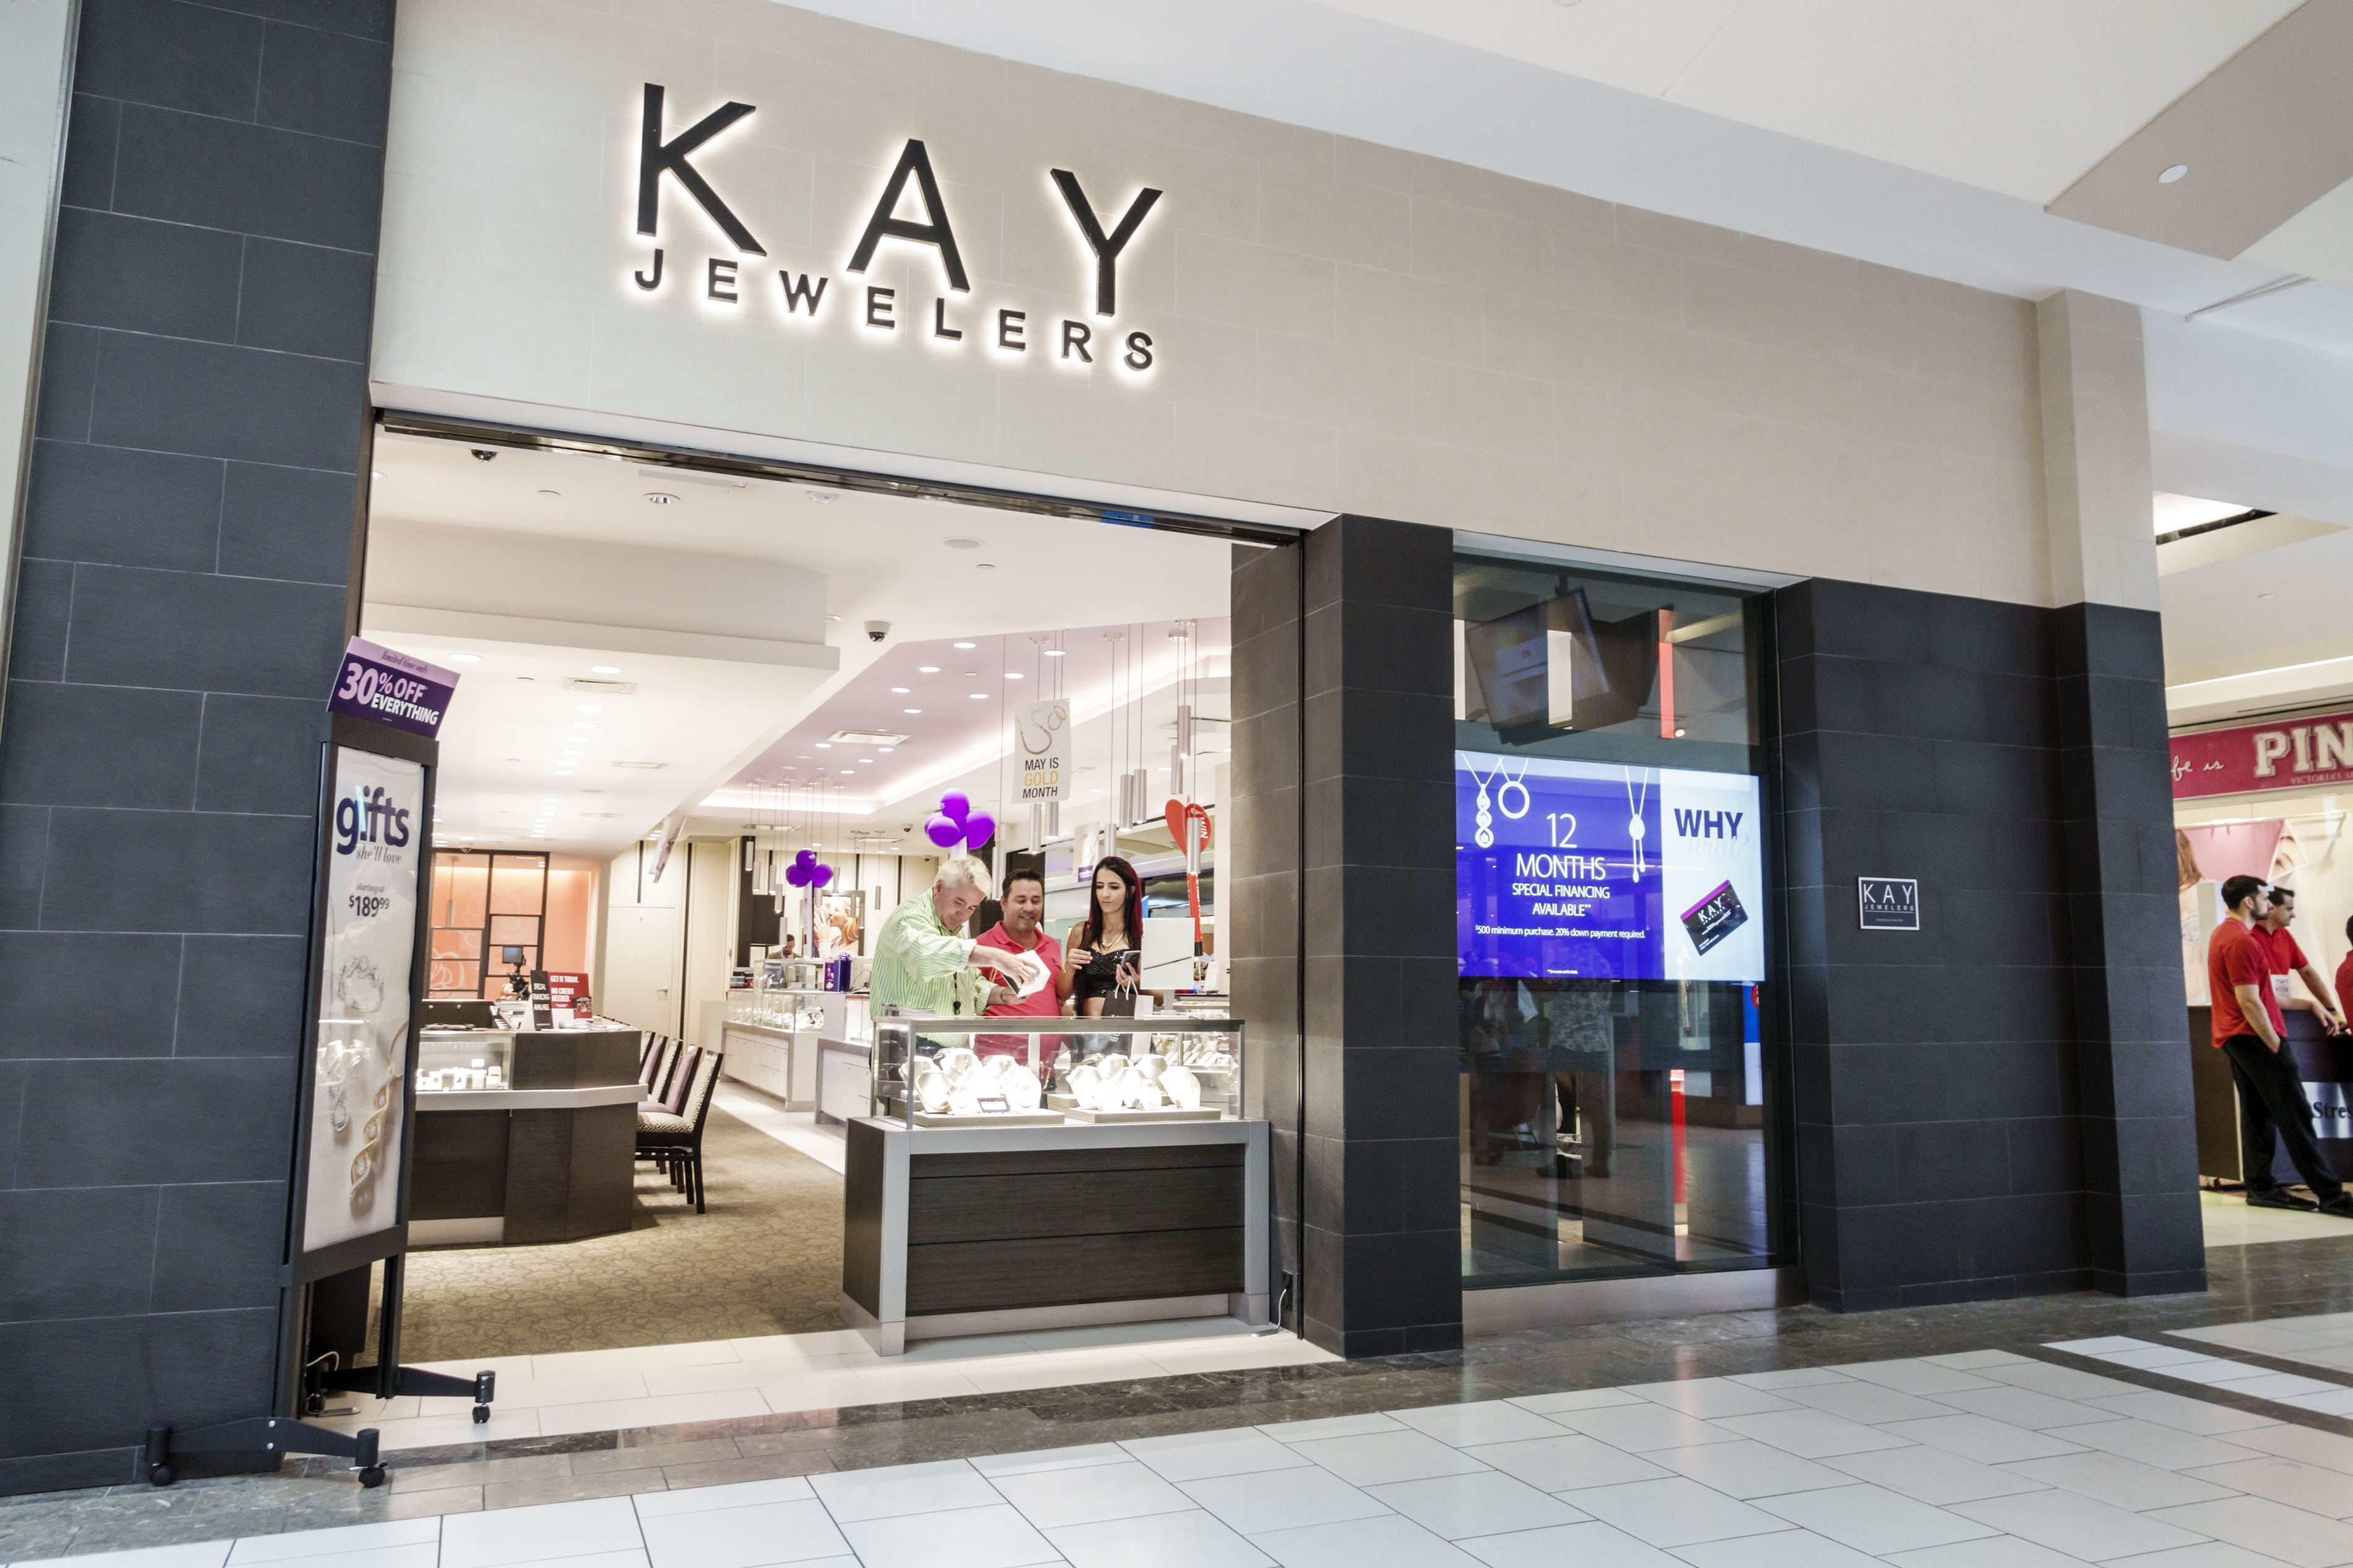 Signet Jewelers, owner of Kay and Zales, has turned the jeweler into a  major e-commerce player | Fortune